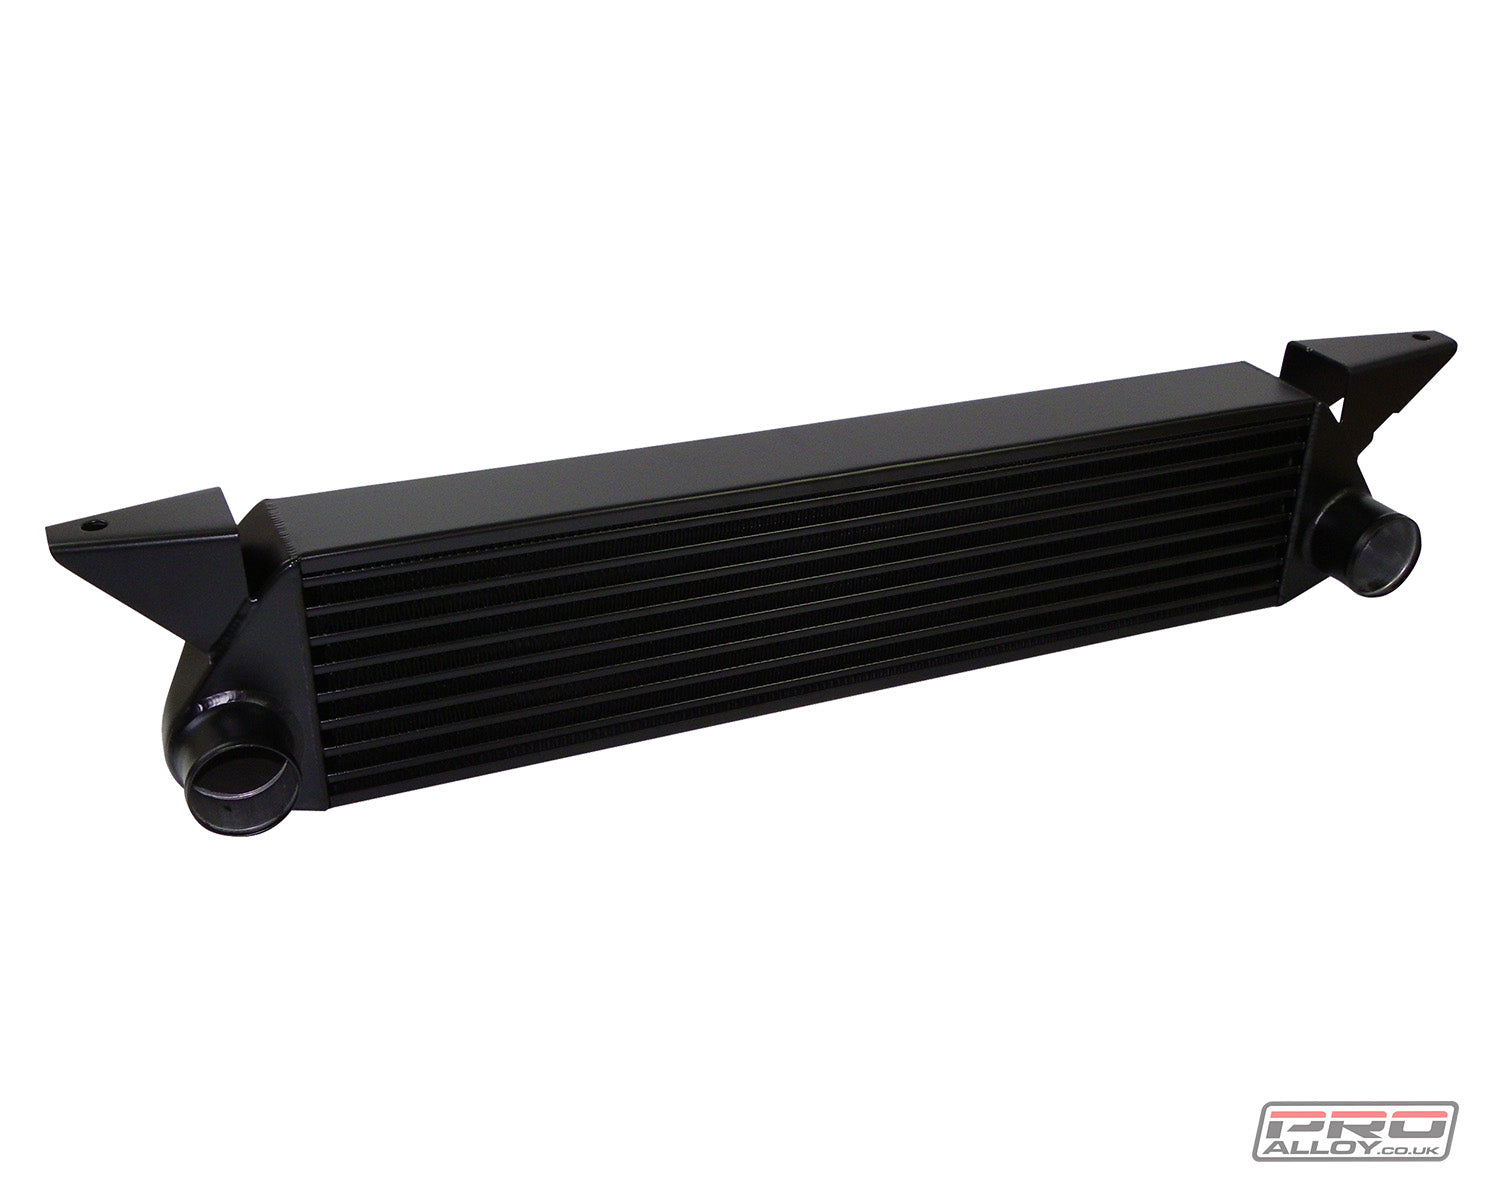 C30 T5 Intercooler